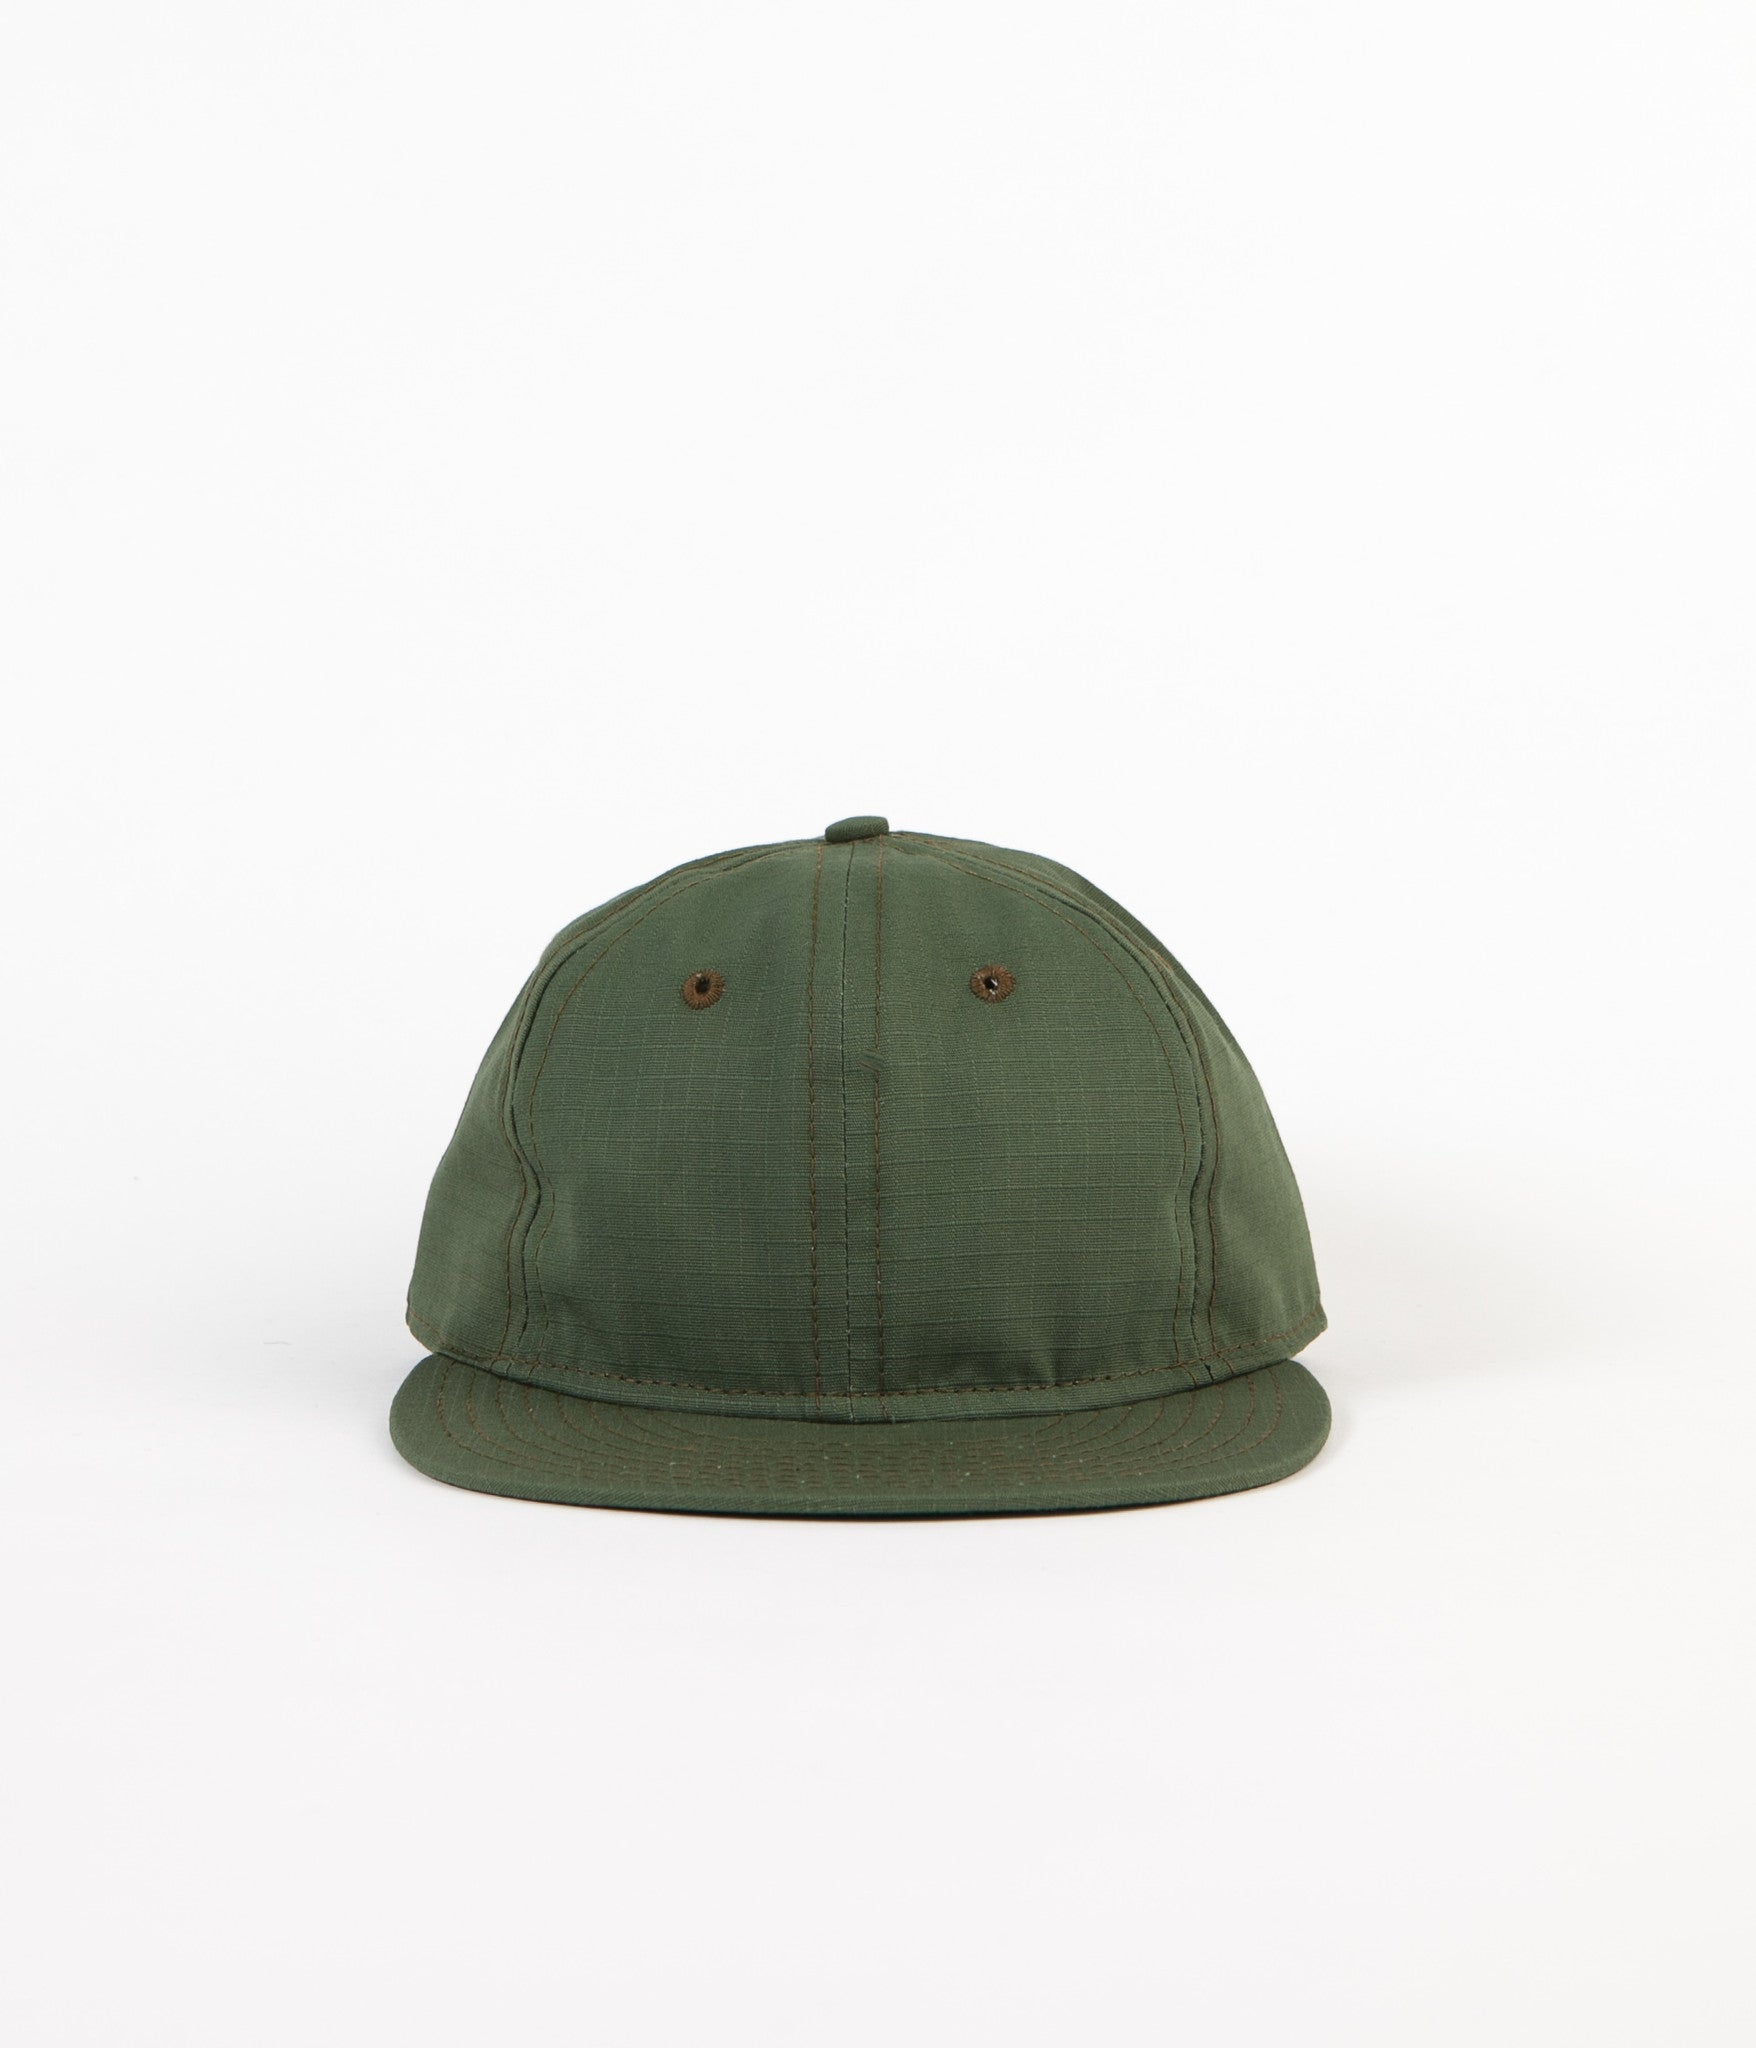 Ebbets Field Flannels Rip-Stop Cap - Olive Drab